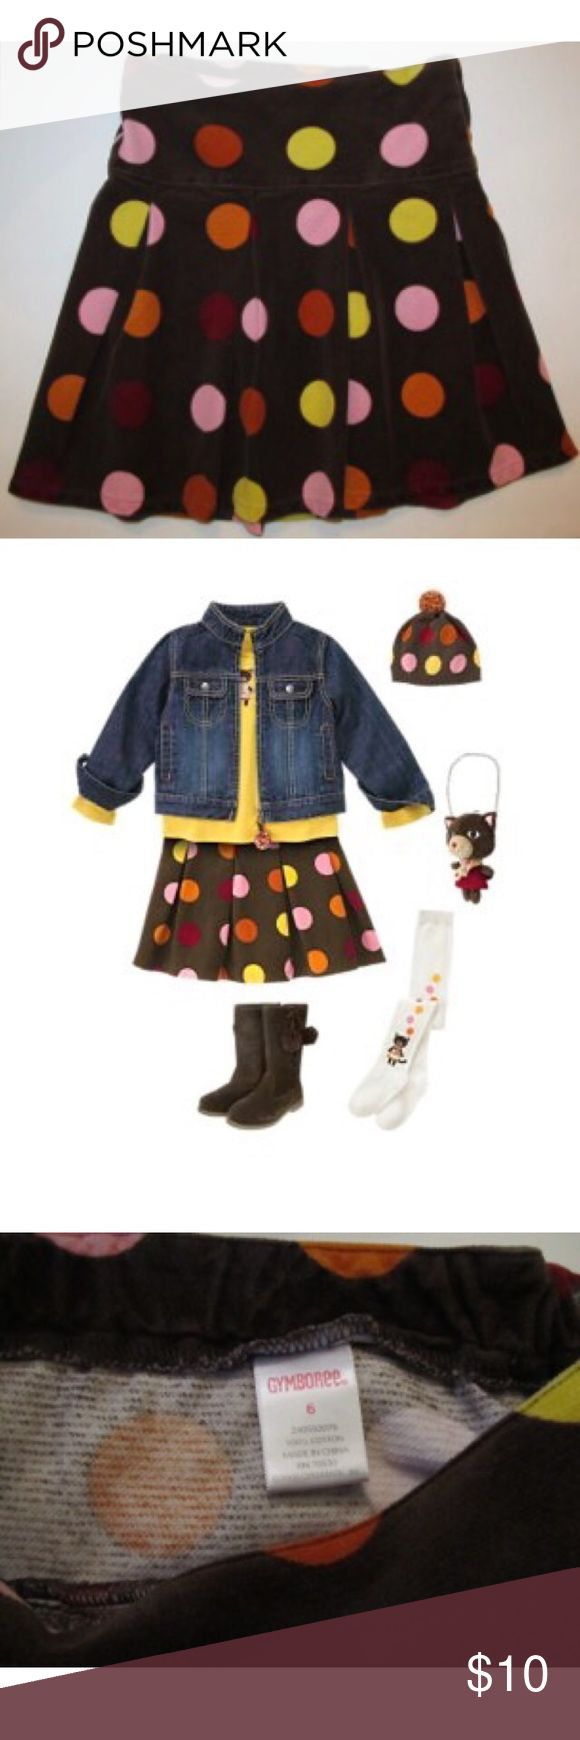 Gymboree polka Dot velour Skirt Purrfect Autumn 🍂 Adorable Gymboree dot skirt from the Purrfect Autumn collection in size 6.  Velour soft texture.  Brown with colorful dots of pink, orange, yellow, & red.  Pleats. Inner adjustable waist & side zip. Excellent pre-owned condition. Gymboree Bottoms Skirts